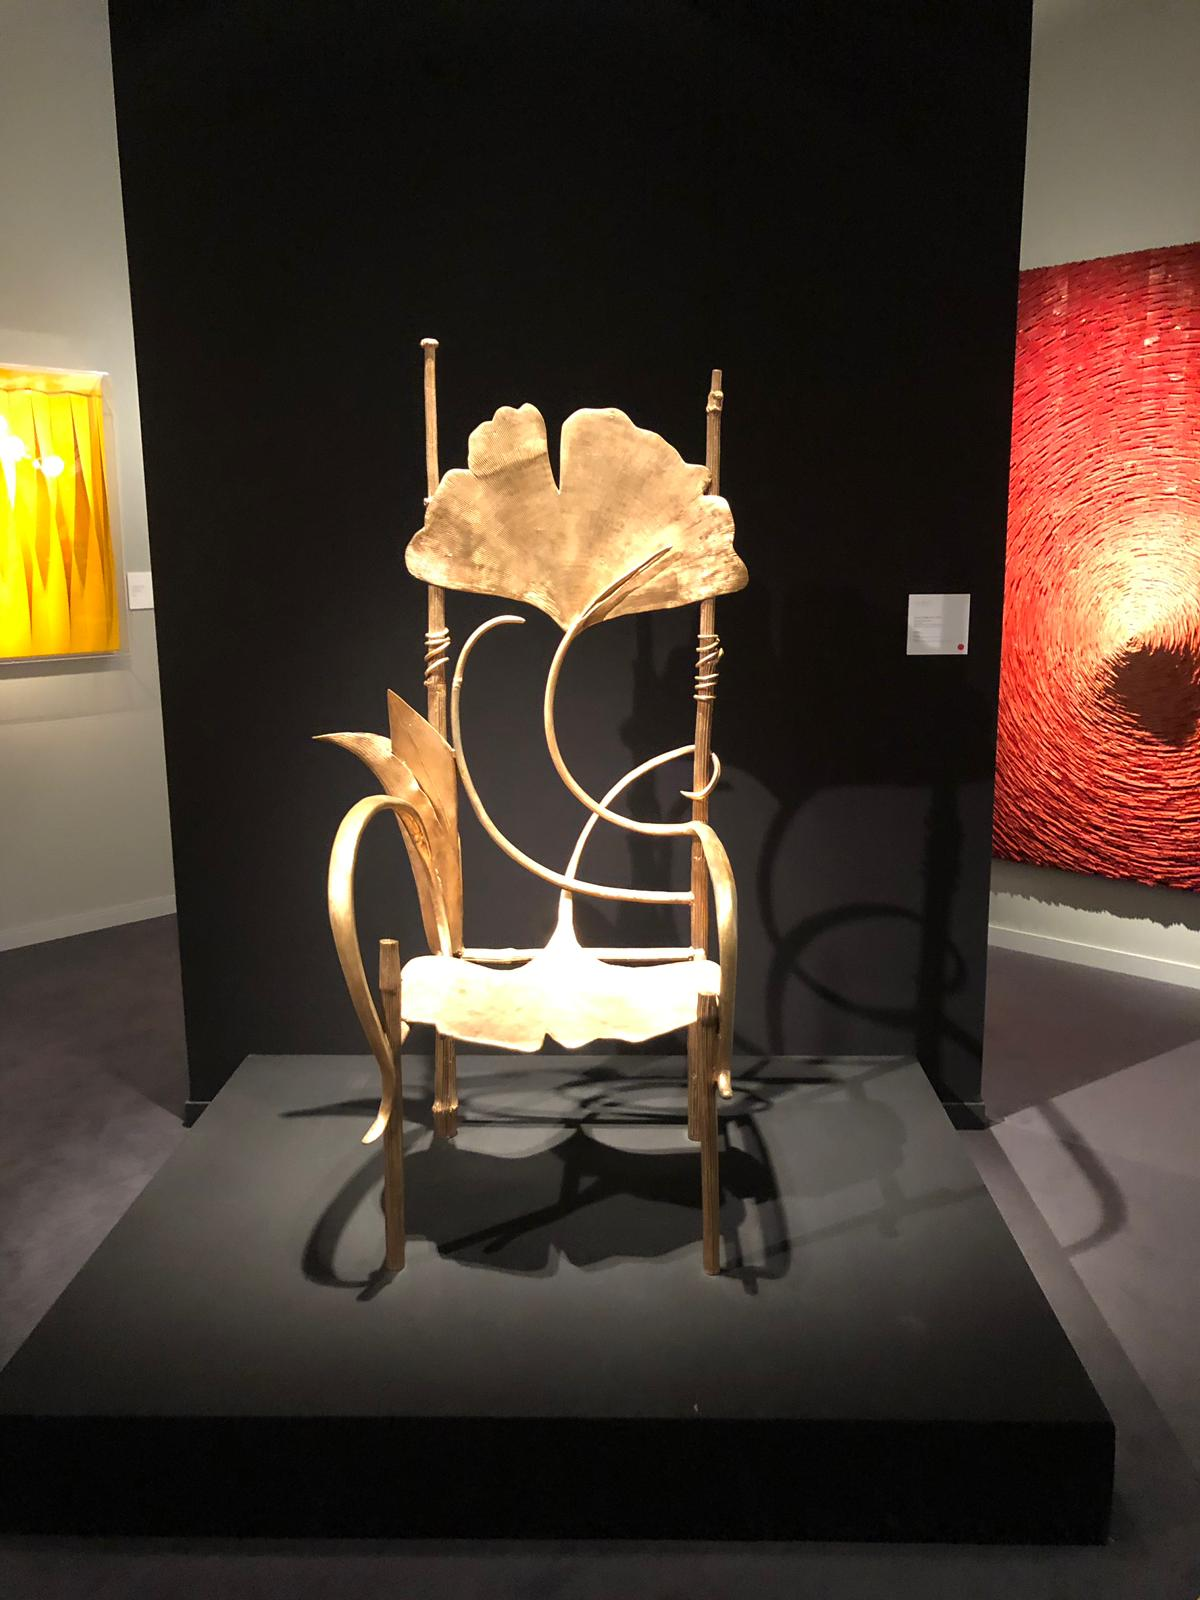 ginko leaf chair at pad paris 2019 art and design show